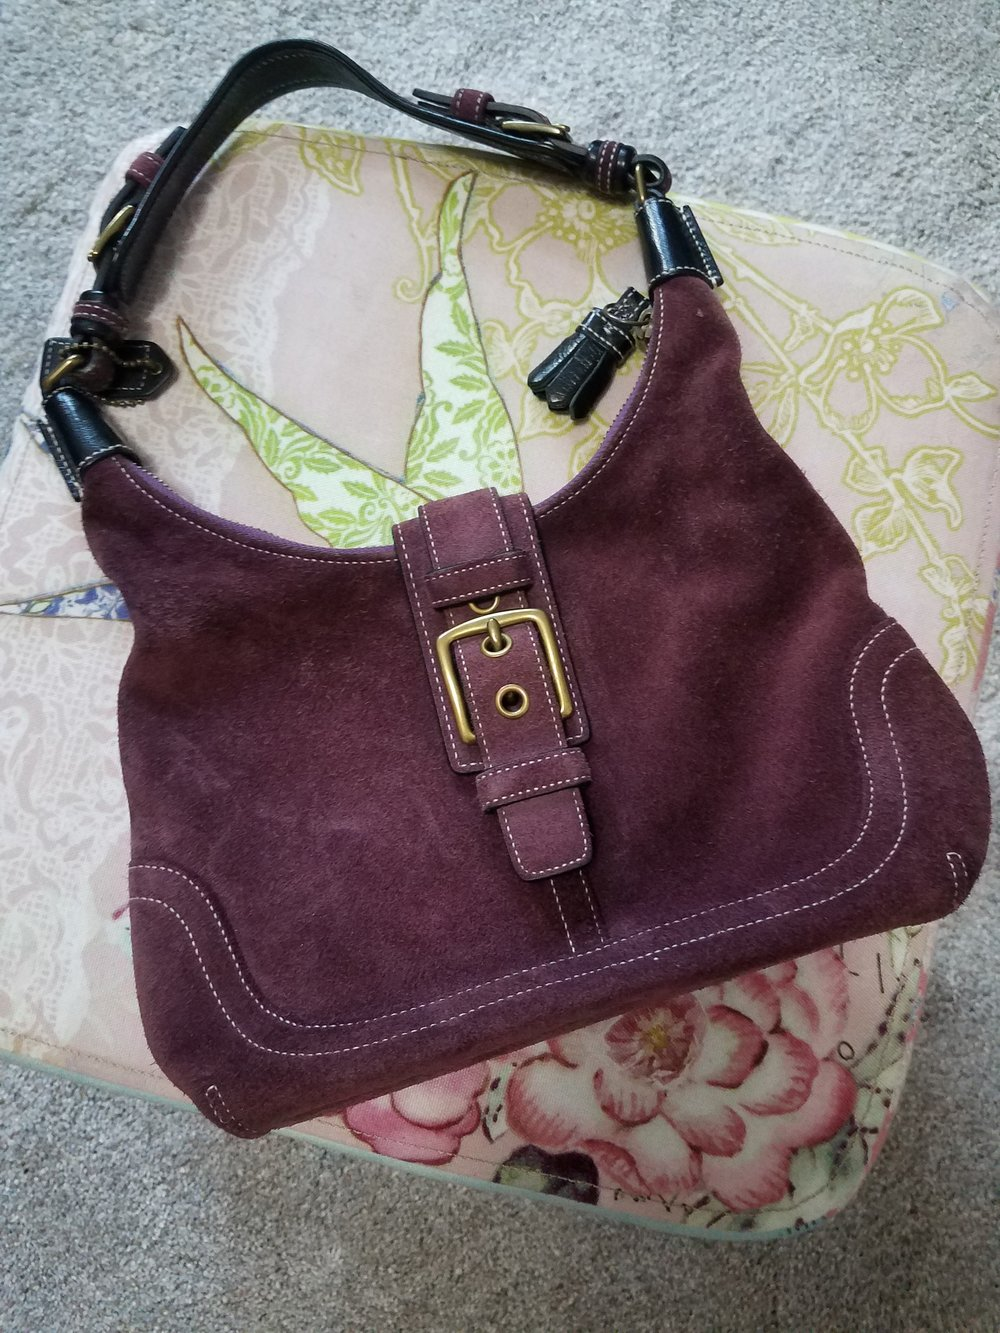 Coach Purple Suede Mini - My husband bought this for me for my birthday some time ago.  As is usually the case with Coach handbags, this beauty continues to be perfect regardless the year.  What I love:  the color, the suede, the hardware, the leather trim.  Everything really!